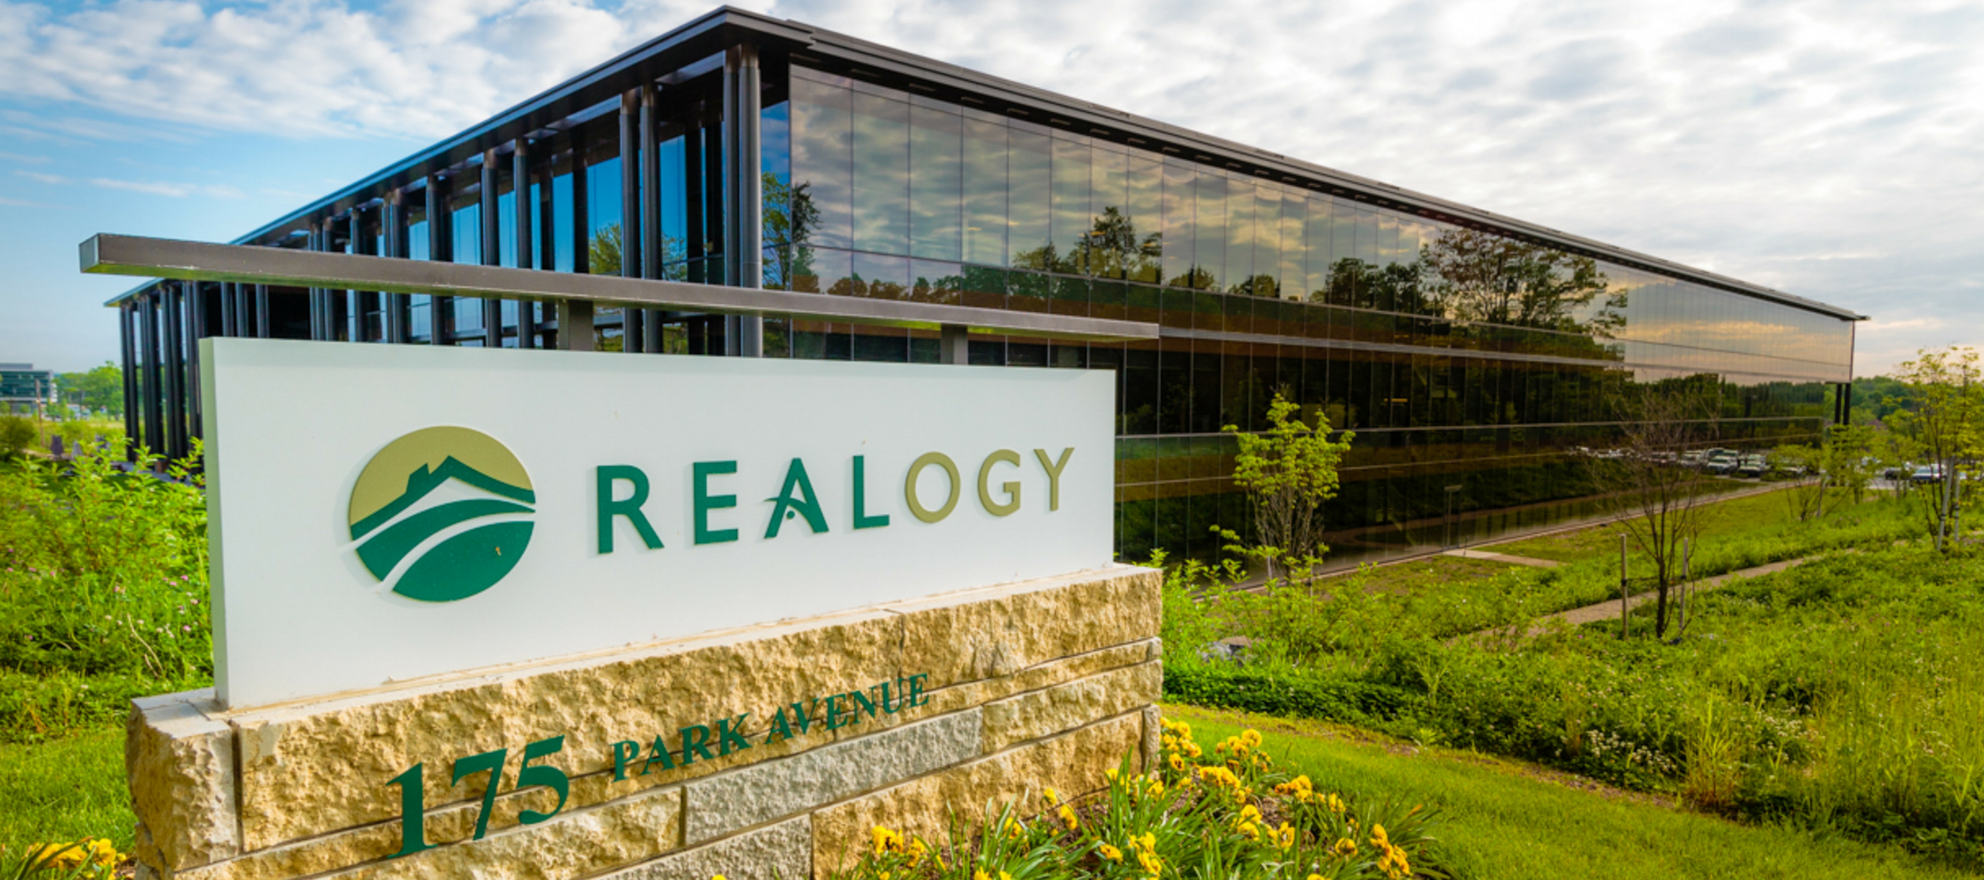 Realogy to launch new franchise brand in 2019